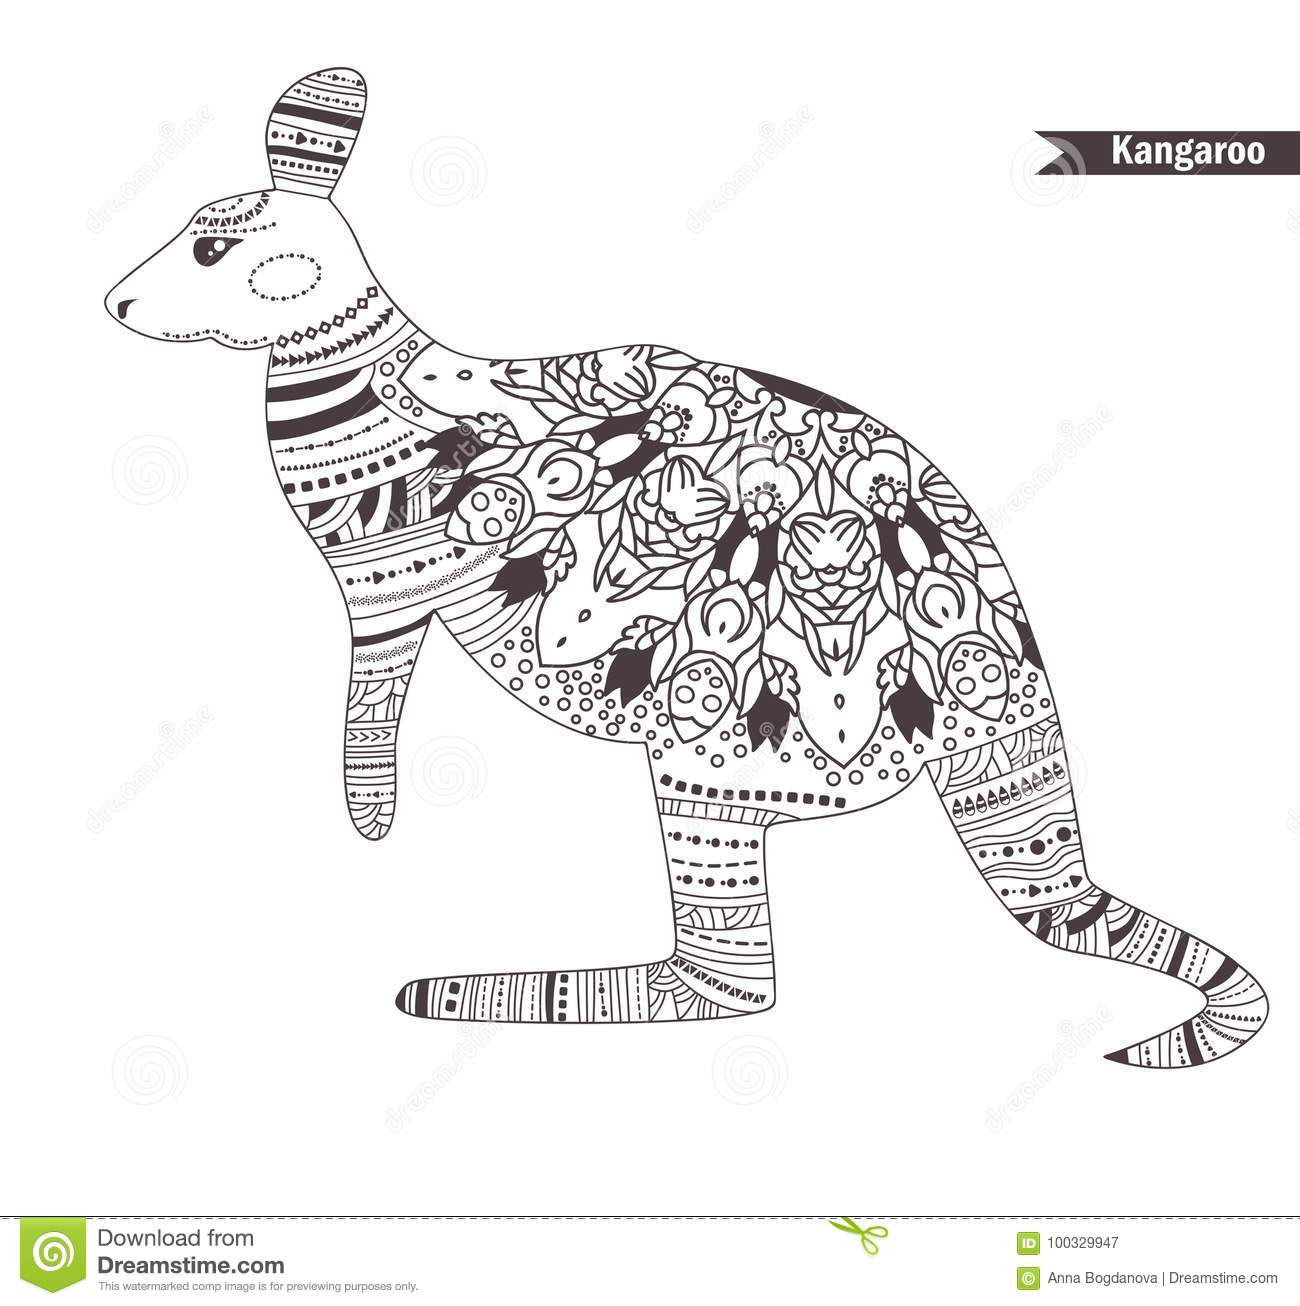 Kangaroo Coloring Book Stock Vector Illustration Of